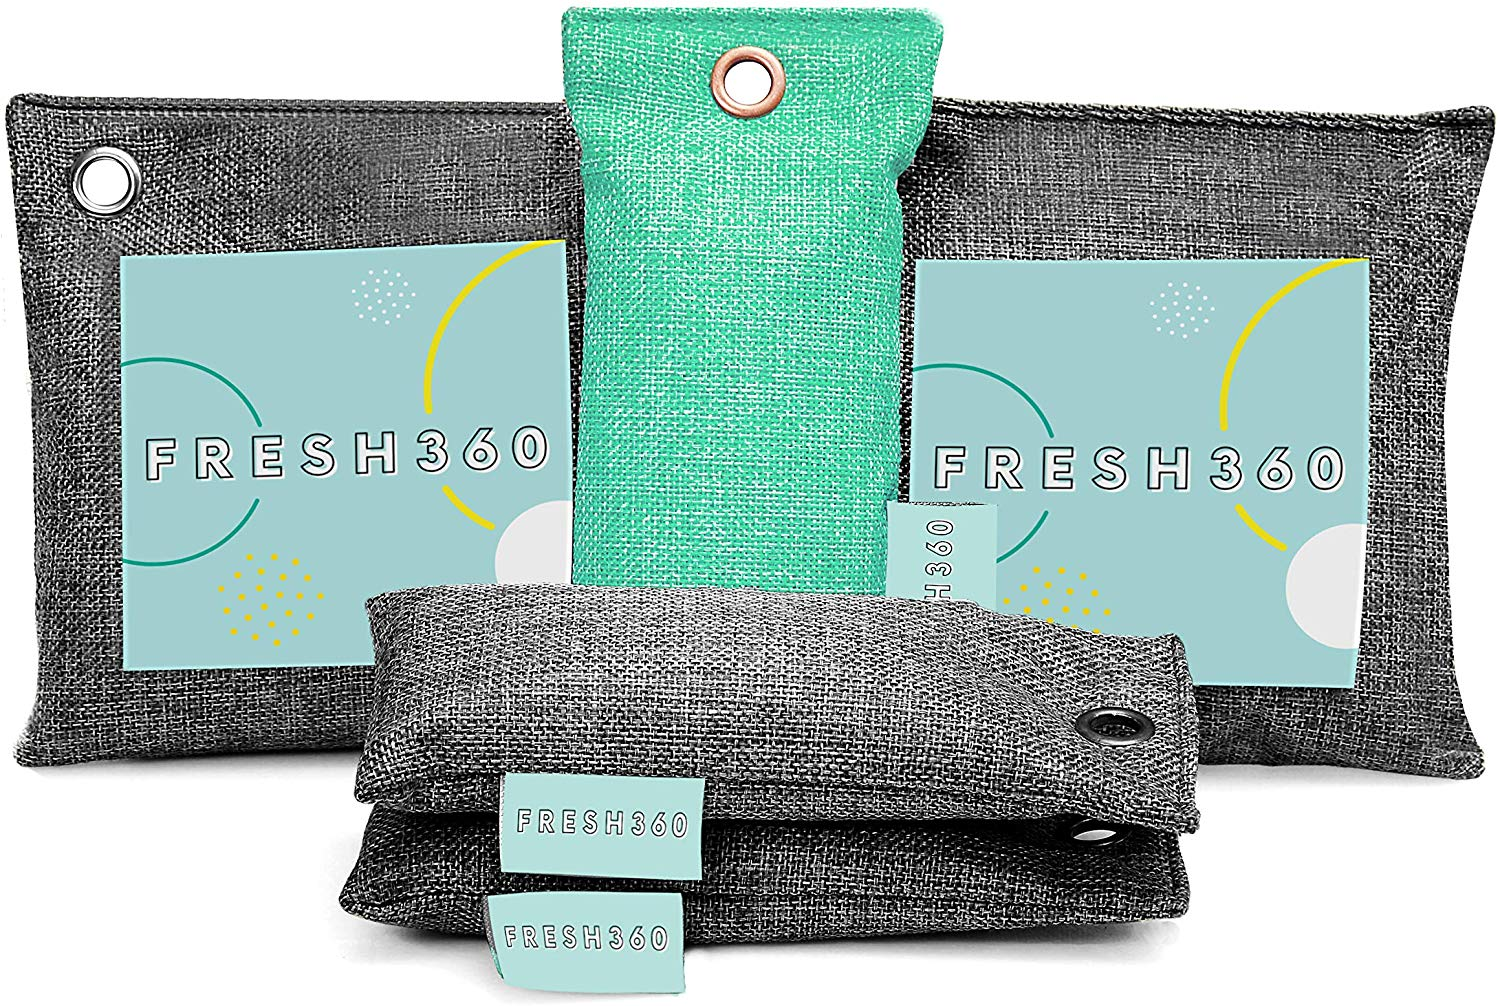 Bamboo Charcoal Air Purifying Bag (5 Pack) Bundle, Natural Air Fresheners & Odor Eliminators for Home, Bad Air Deodorizer, Closet Freshener, Fridge Deodorizer, Car Air Purifier, Shoe Odor Eliminator